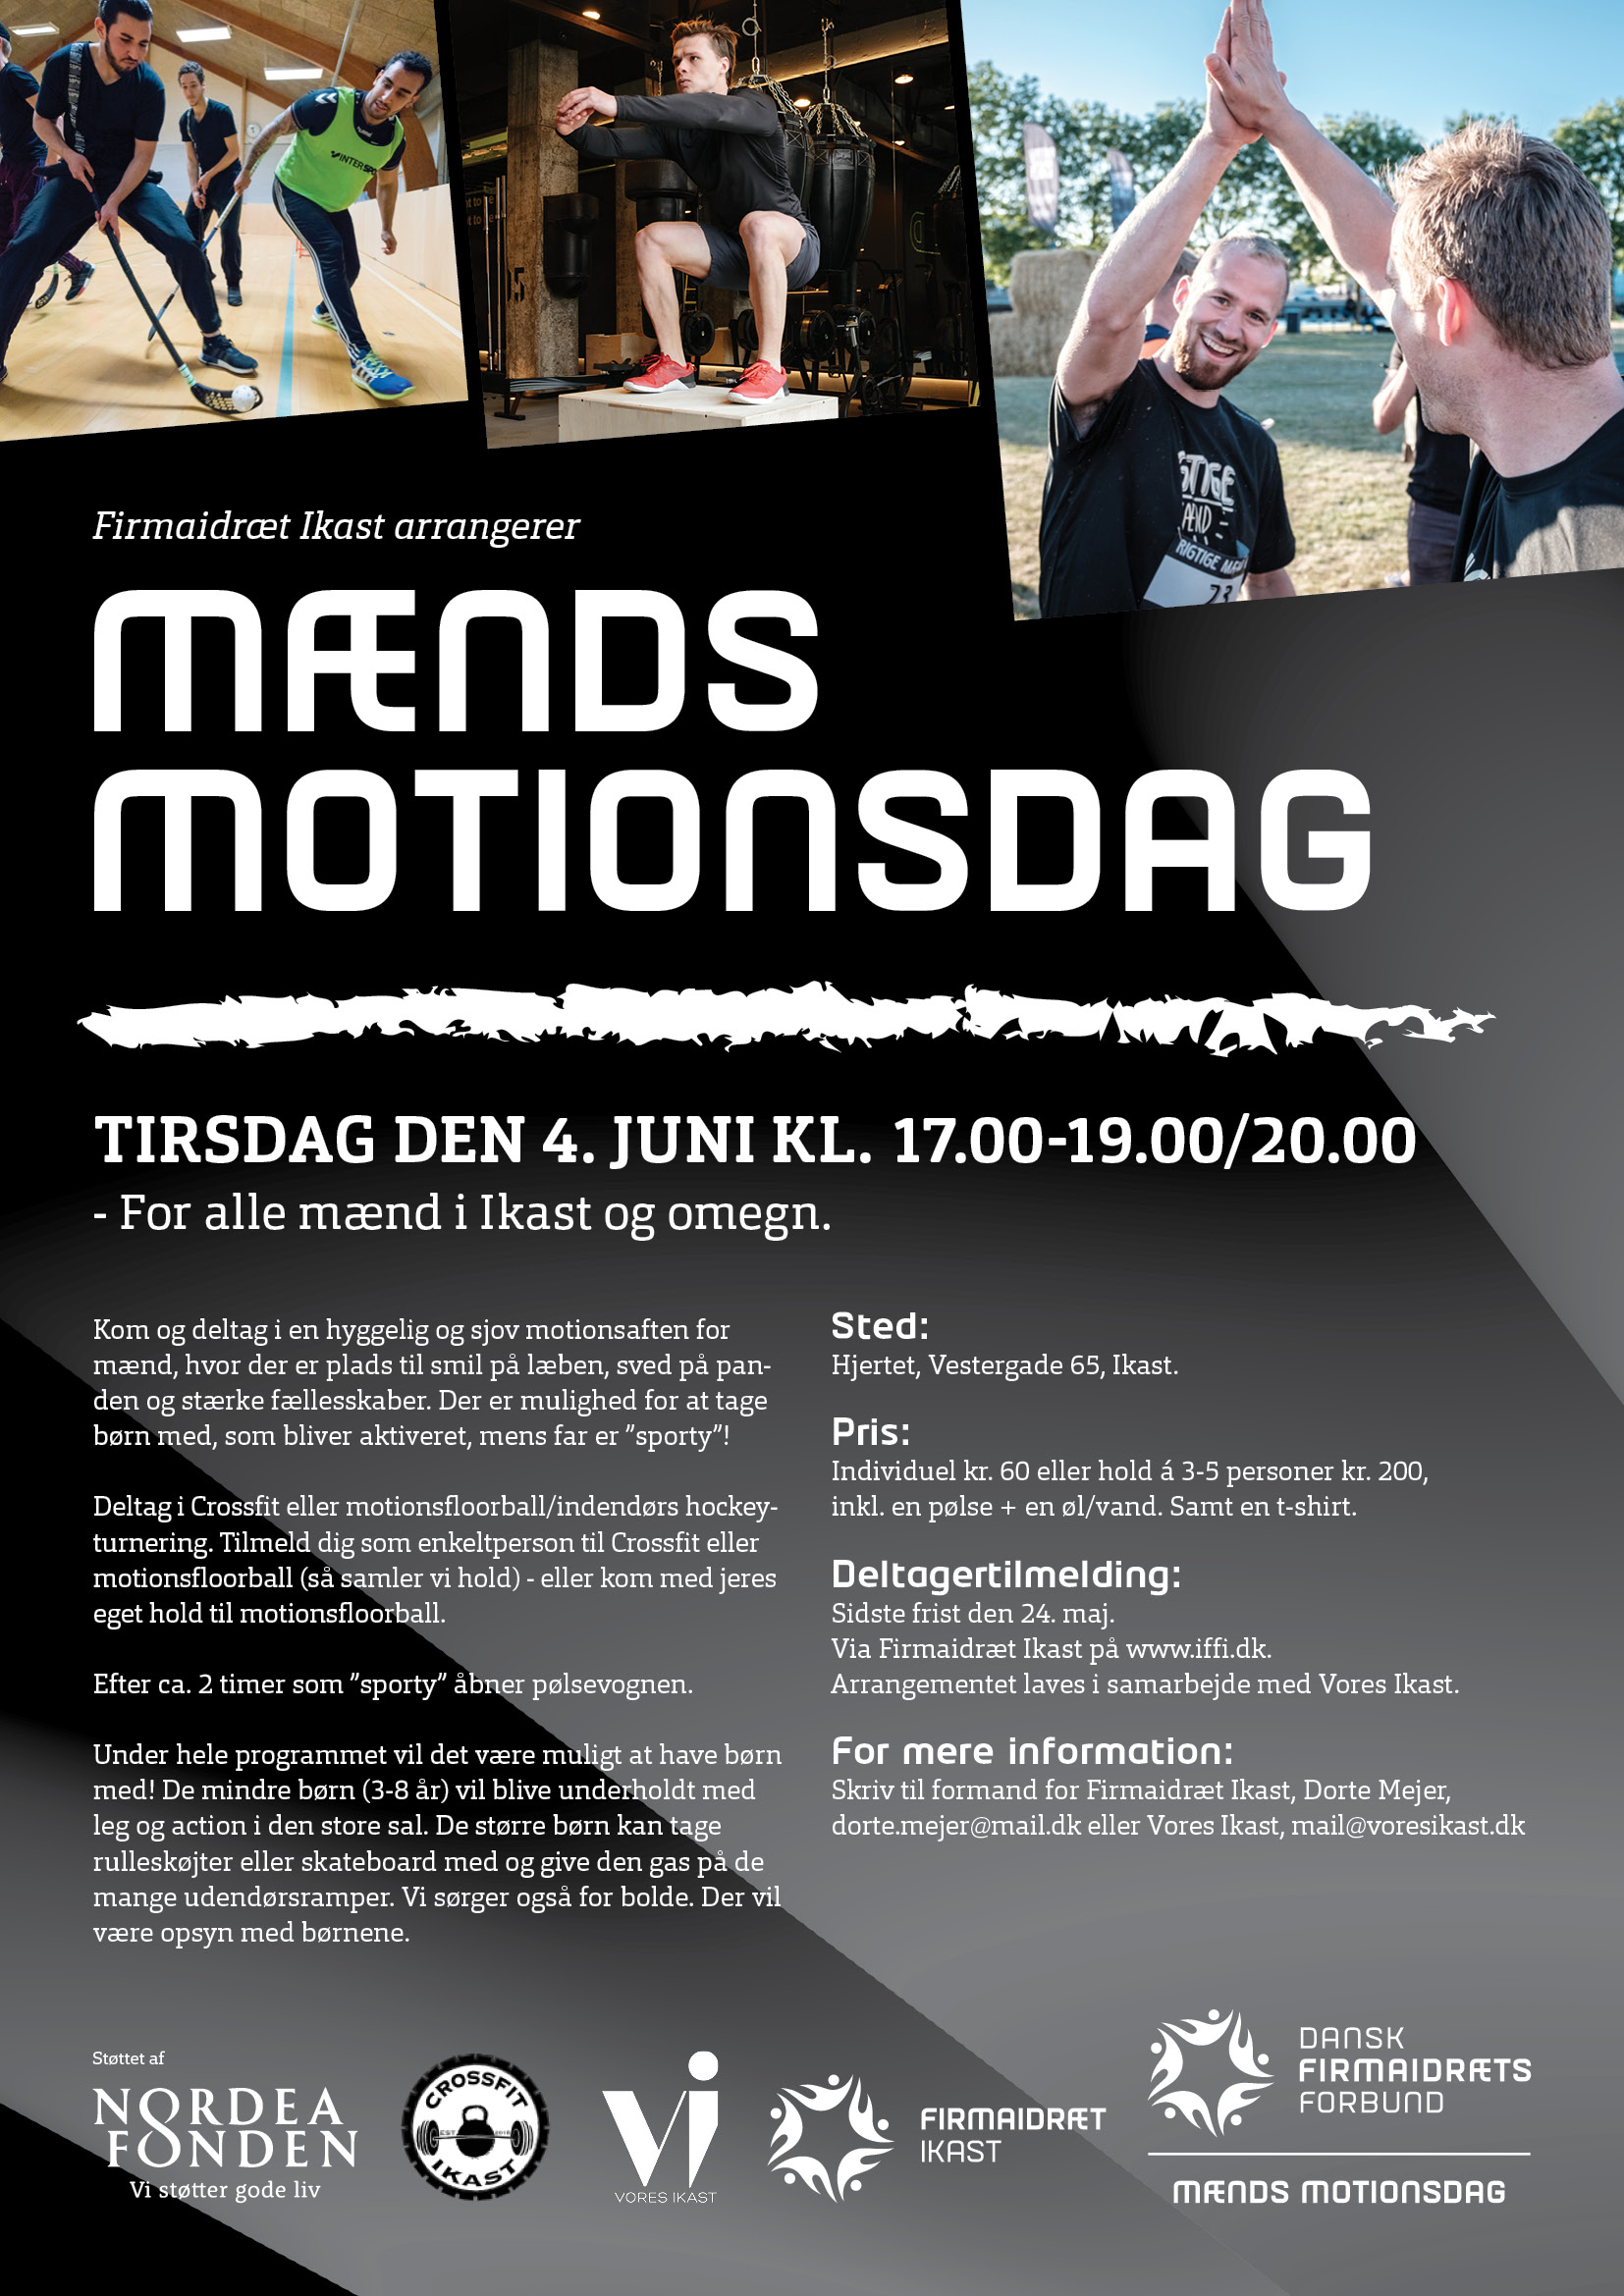 MÆNDS MOTIONSDAG - AFLYST